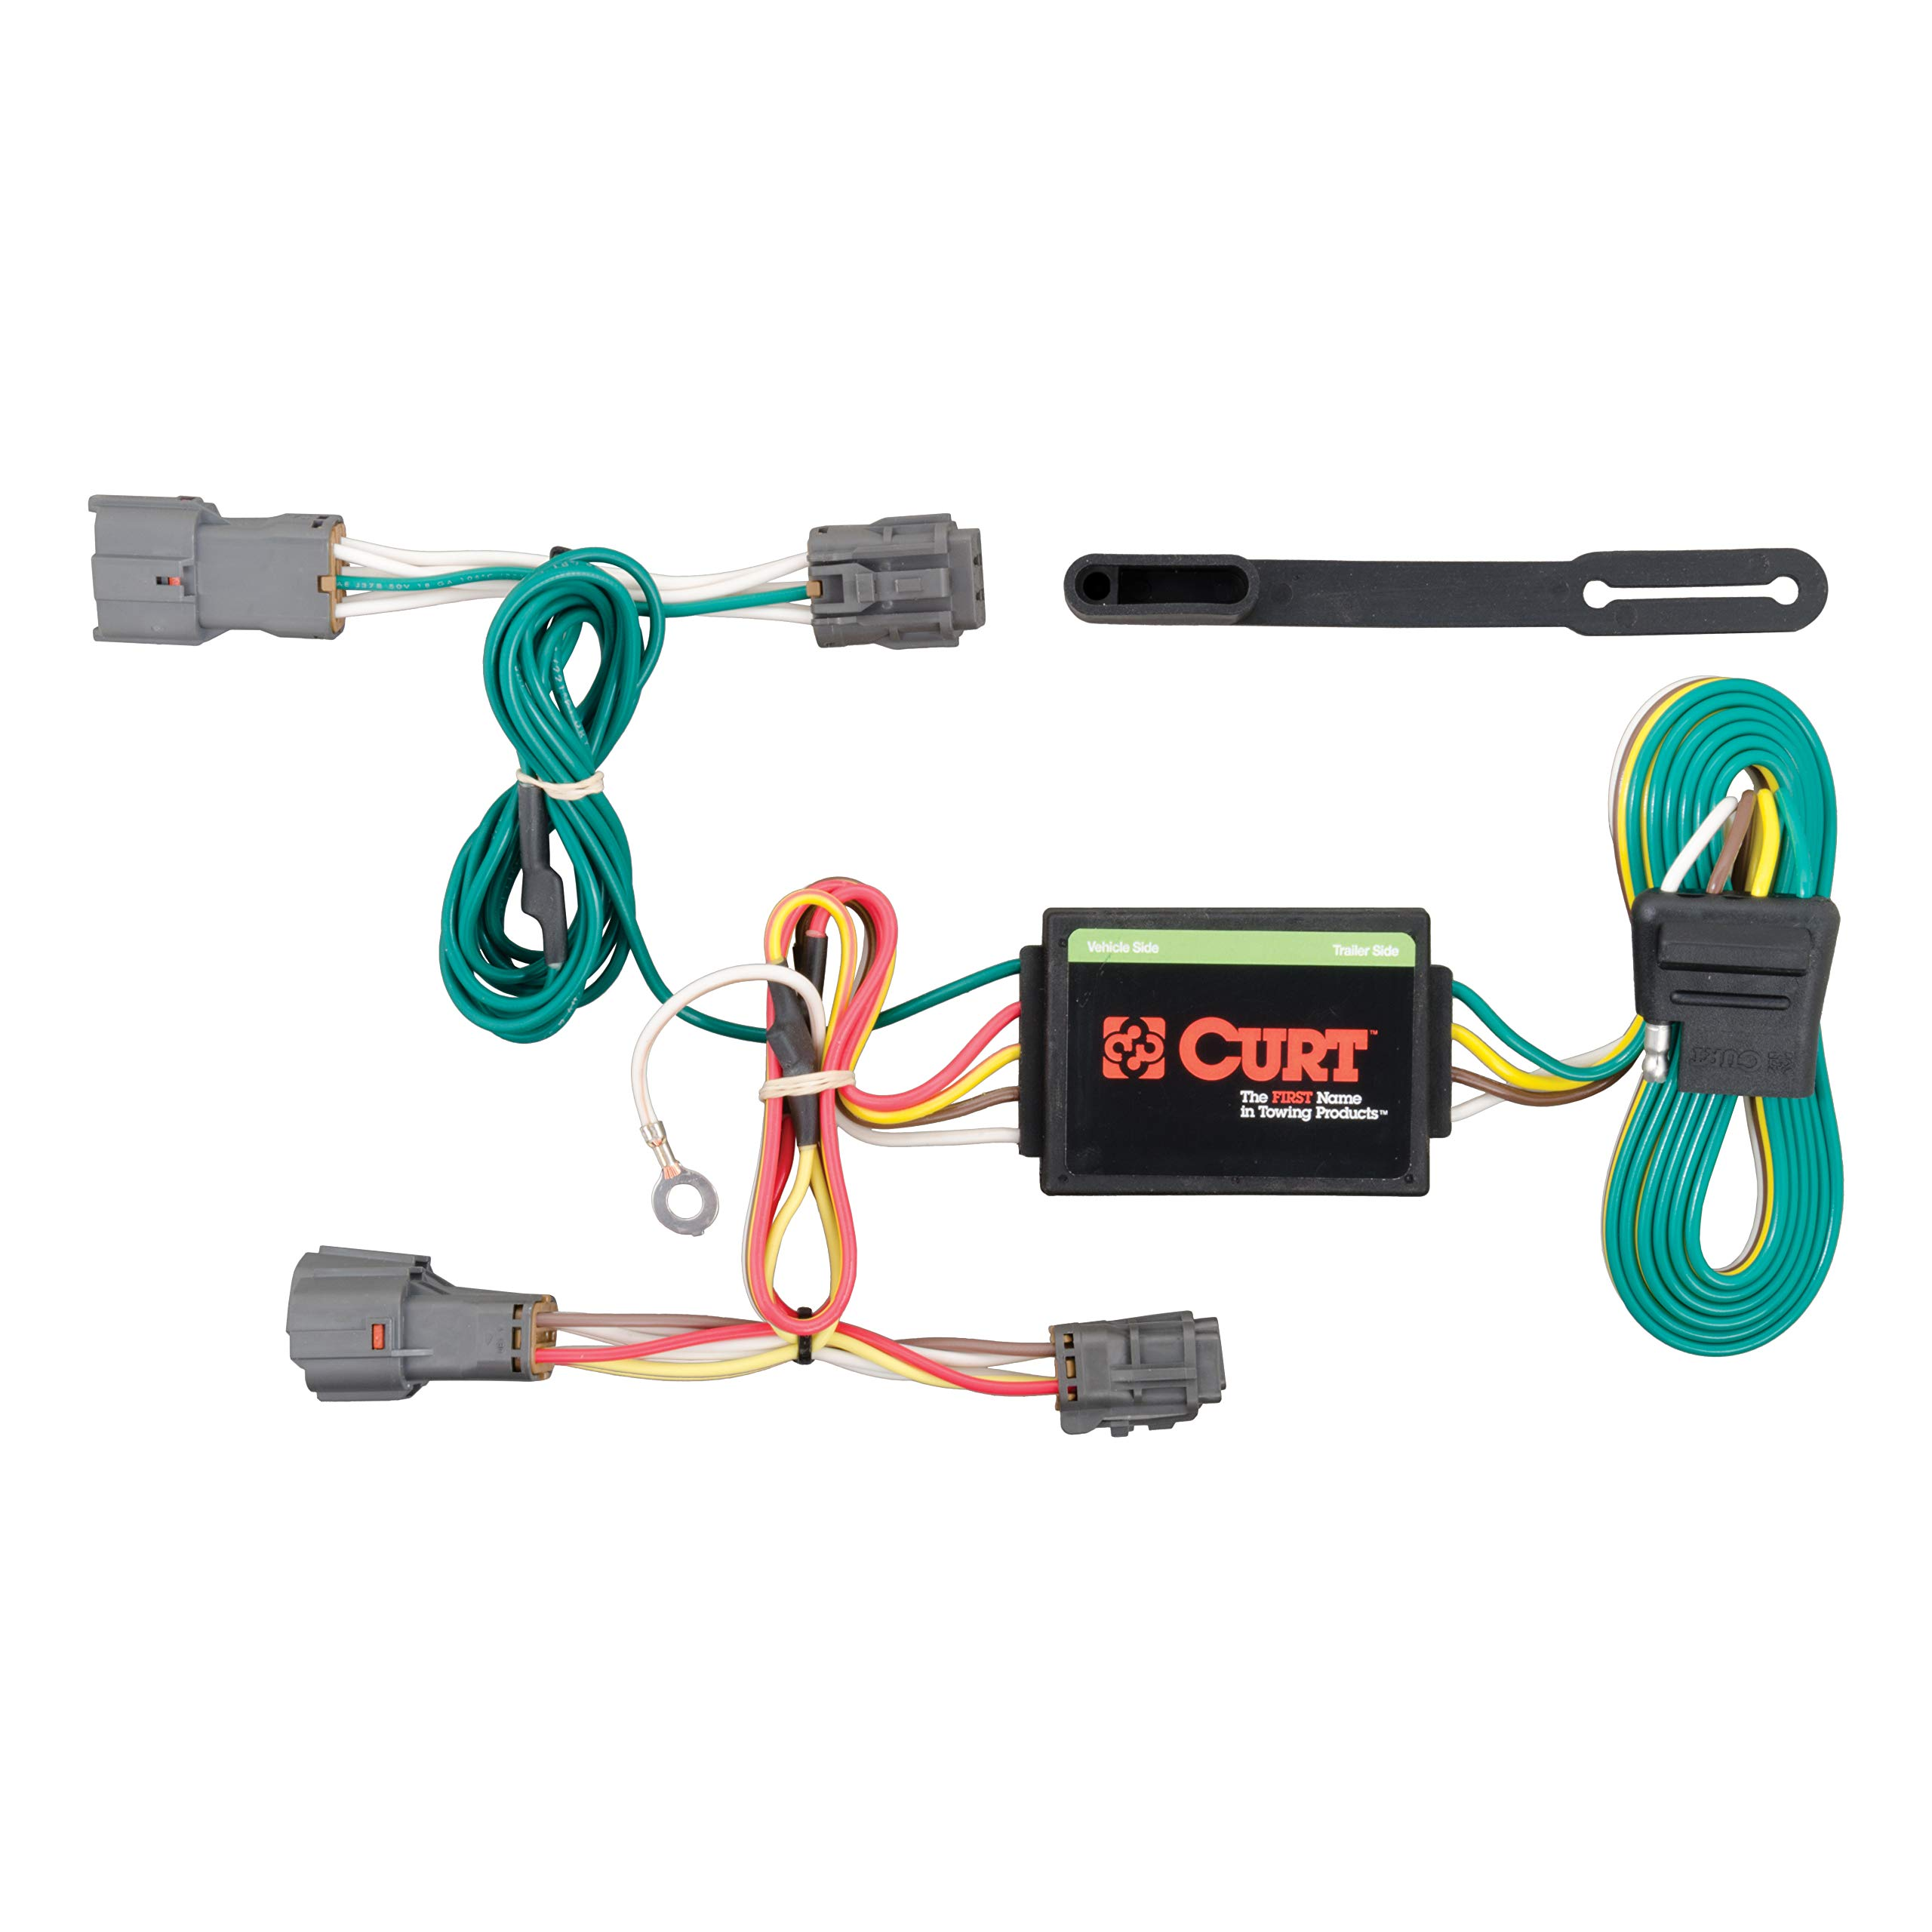 CURT 56222 Vehicle-Side Custom 4-Pin Trailer Wiring Harness for Select Kia Rondo, Kia Soul by Curt Manufacturing